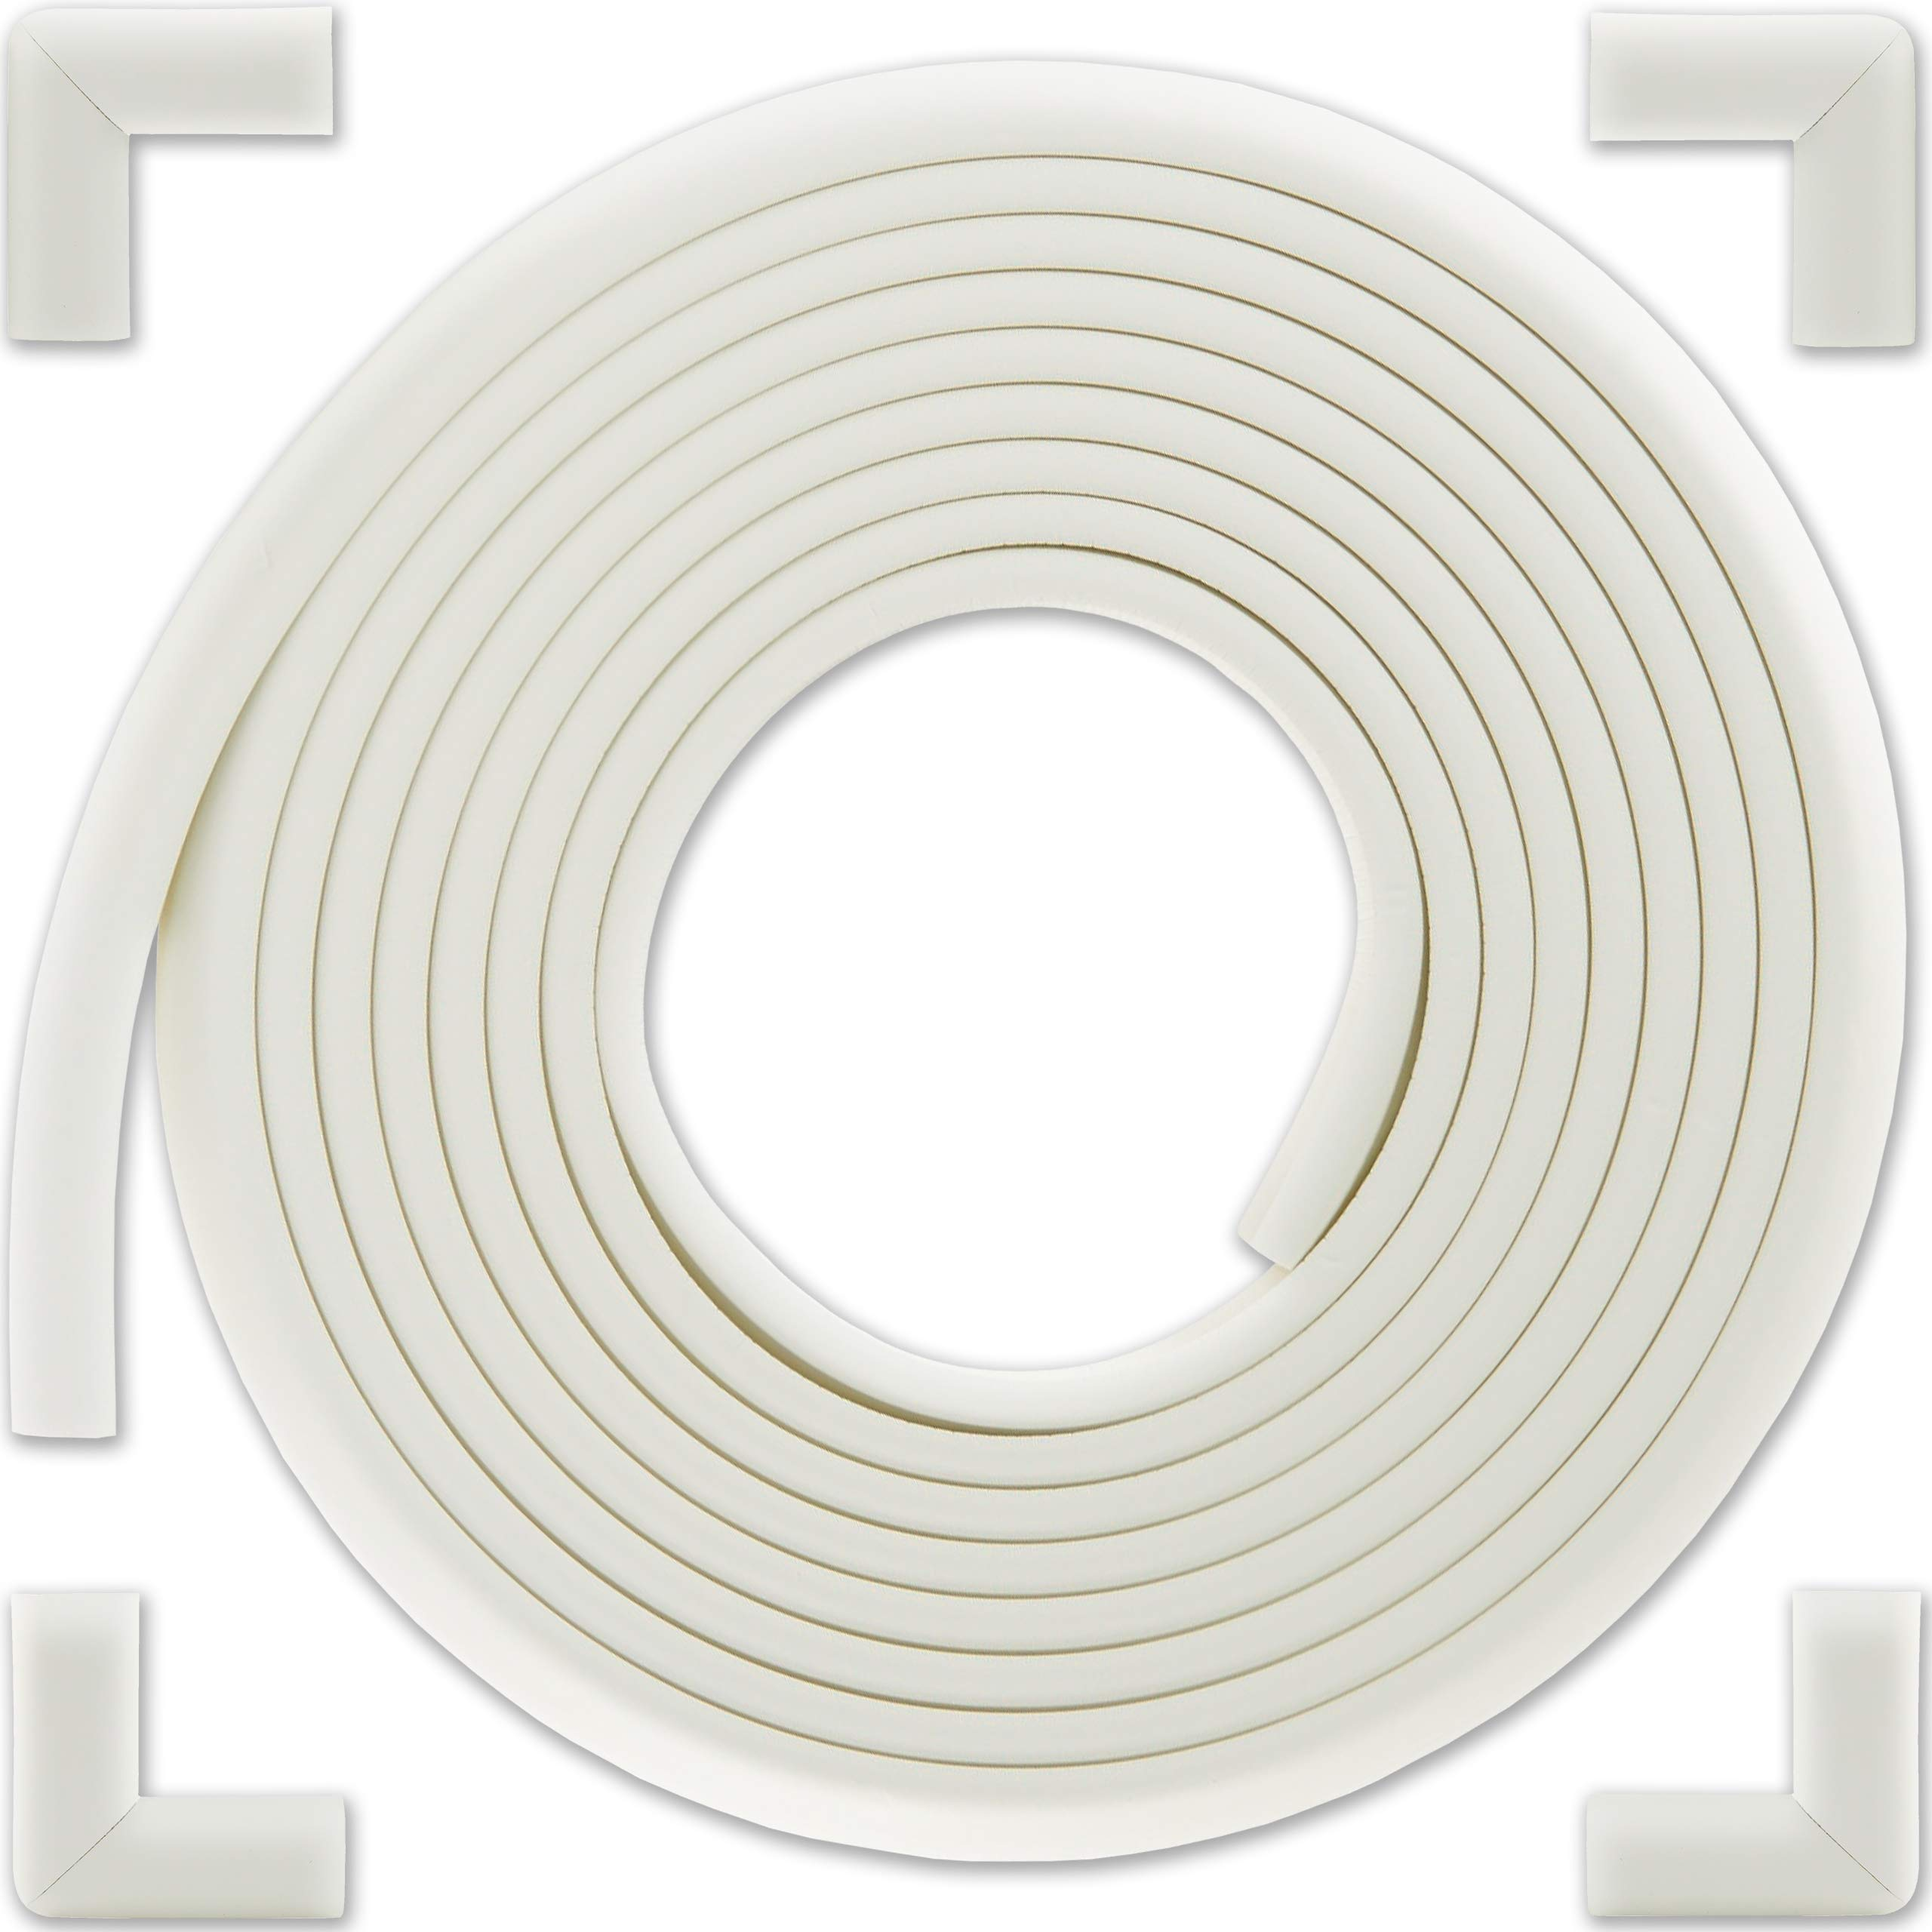 Bebe Earth - Baby Proofing Edge and Corner Guard Protector Set - Safety Bumpers - Child Proof Furniture and Tables - Pre-Taped Bumper Corners (16.4 feet and 4 Corners, Oyster White)